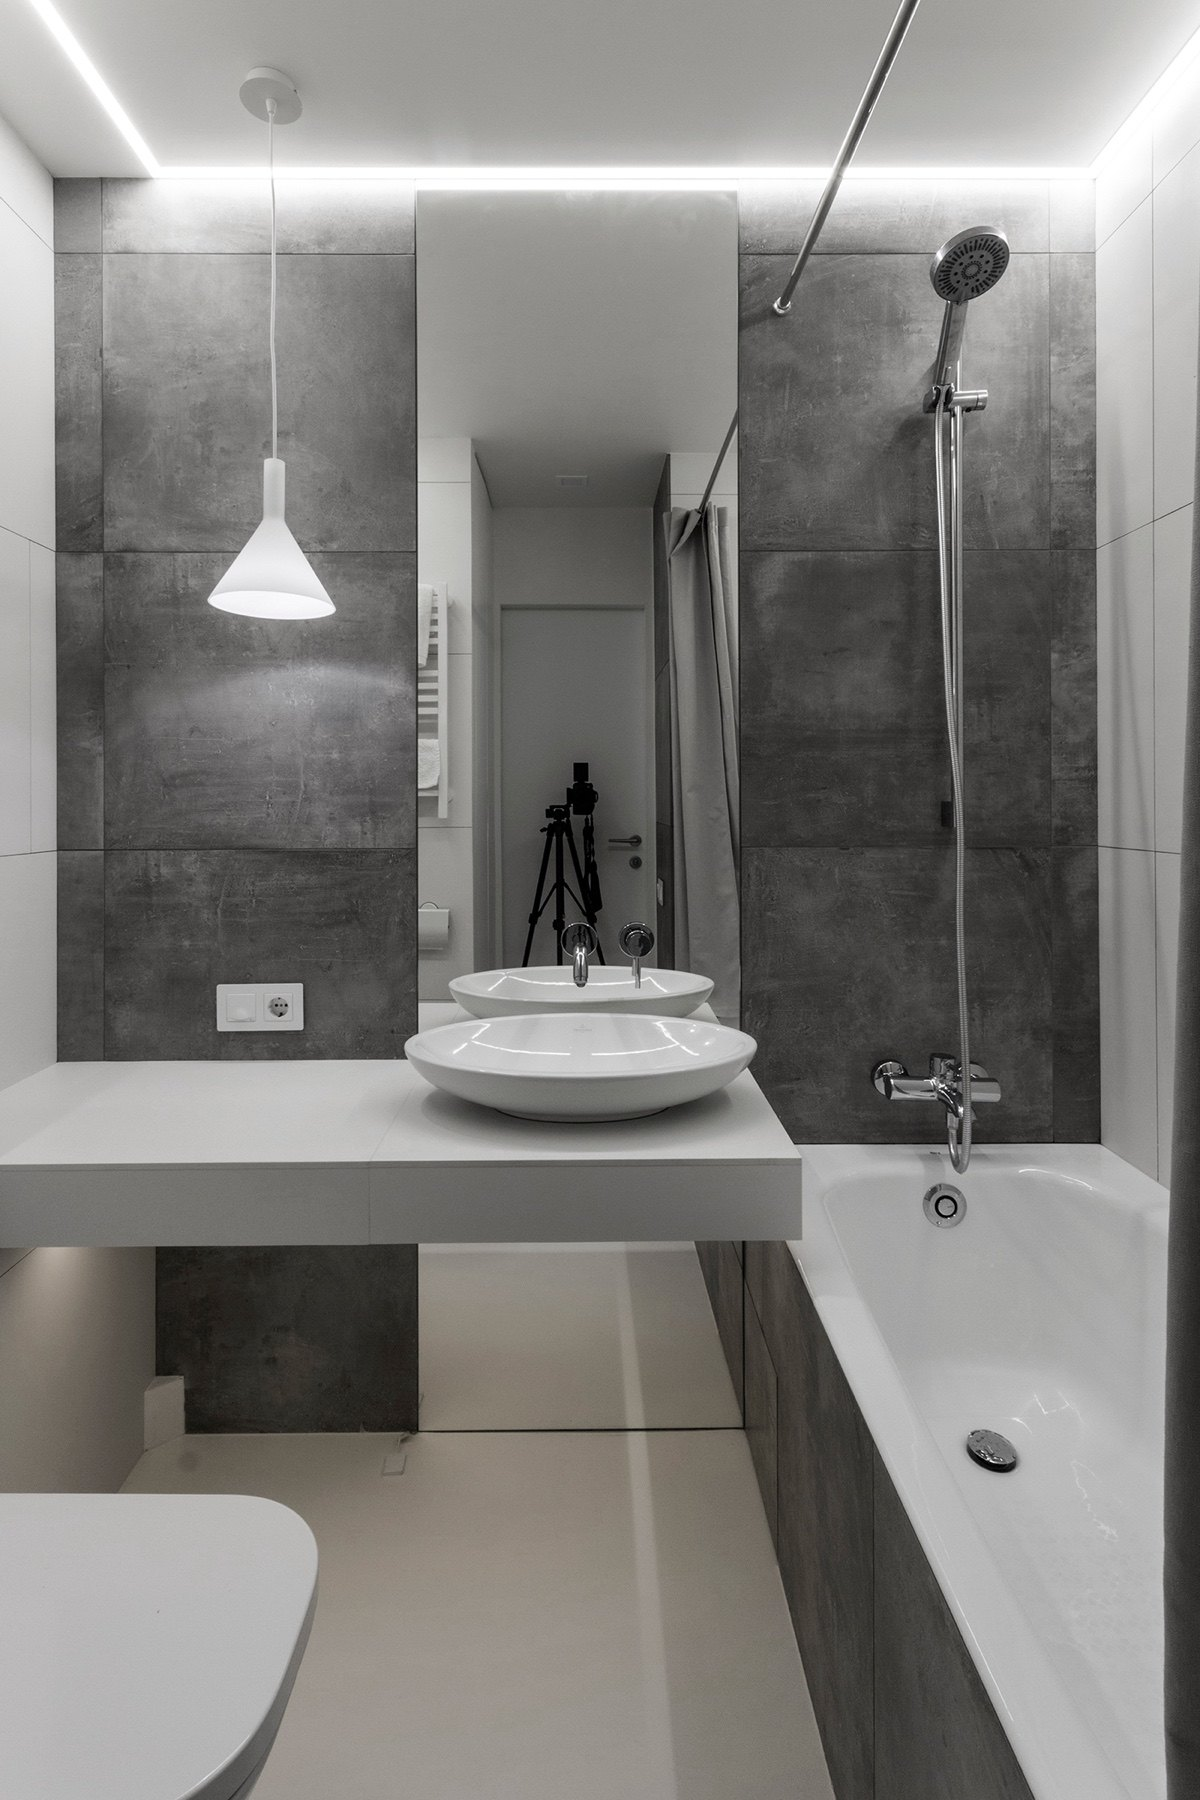 Minimalist Bathroom White And Grey Slate Tile Large Format Walls Porcelain Bowl Handbasin - Super small studio apartment under 50 square meters includes floor plan